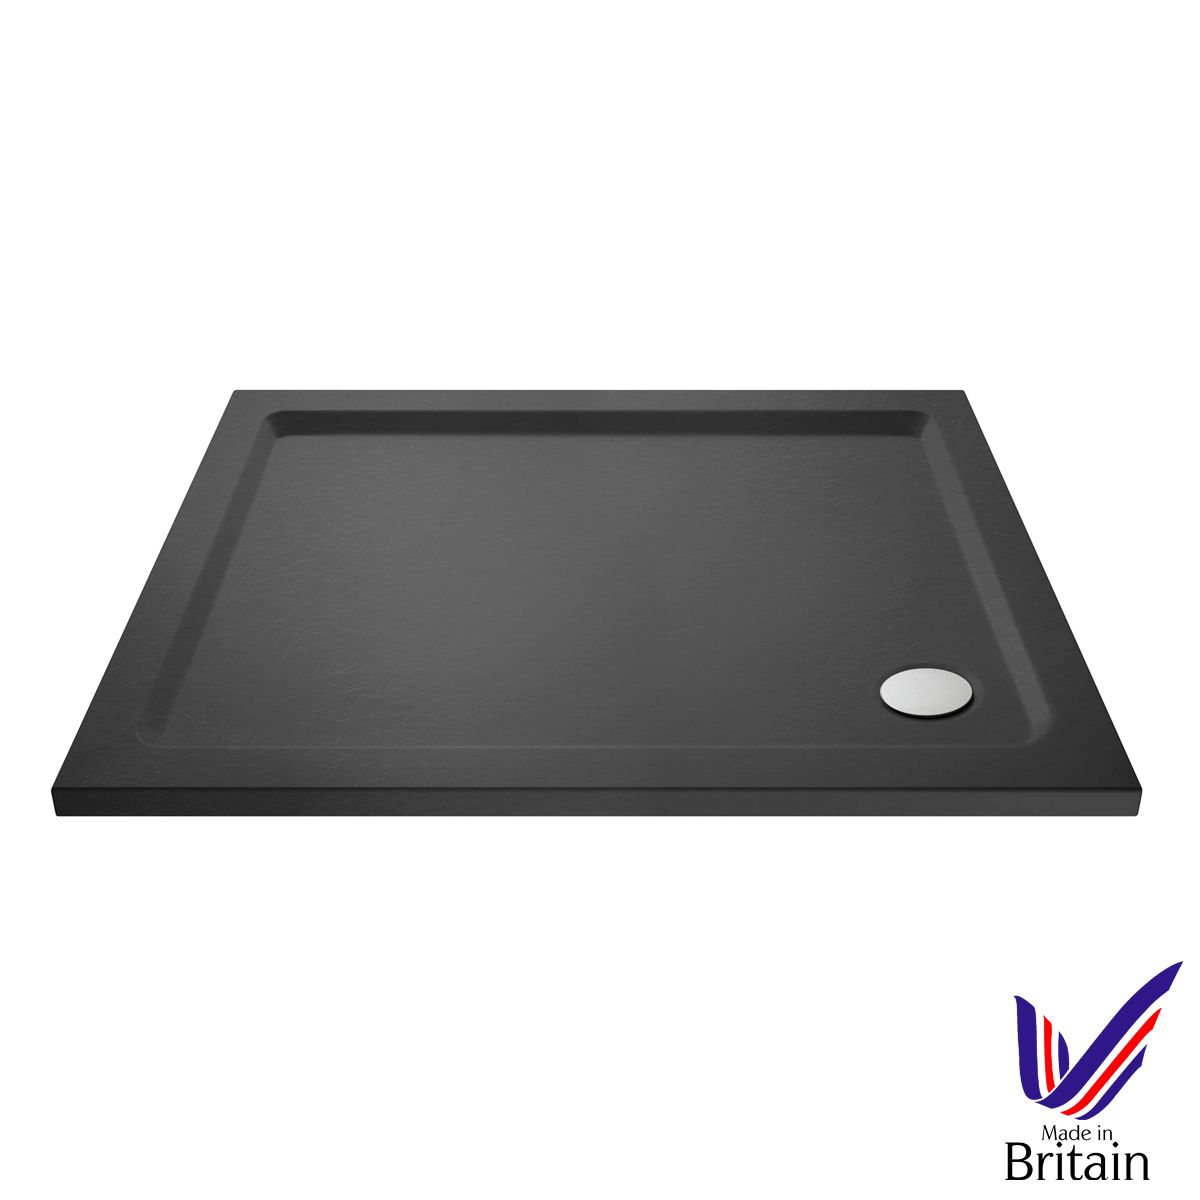 1000 x 900 Shower Tray Slate Grey Rectangular Low Profile by Pearlstone